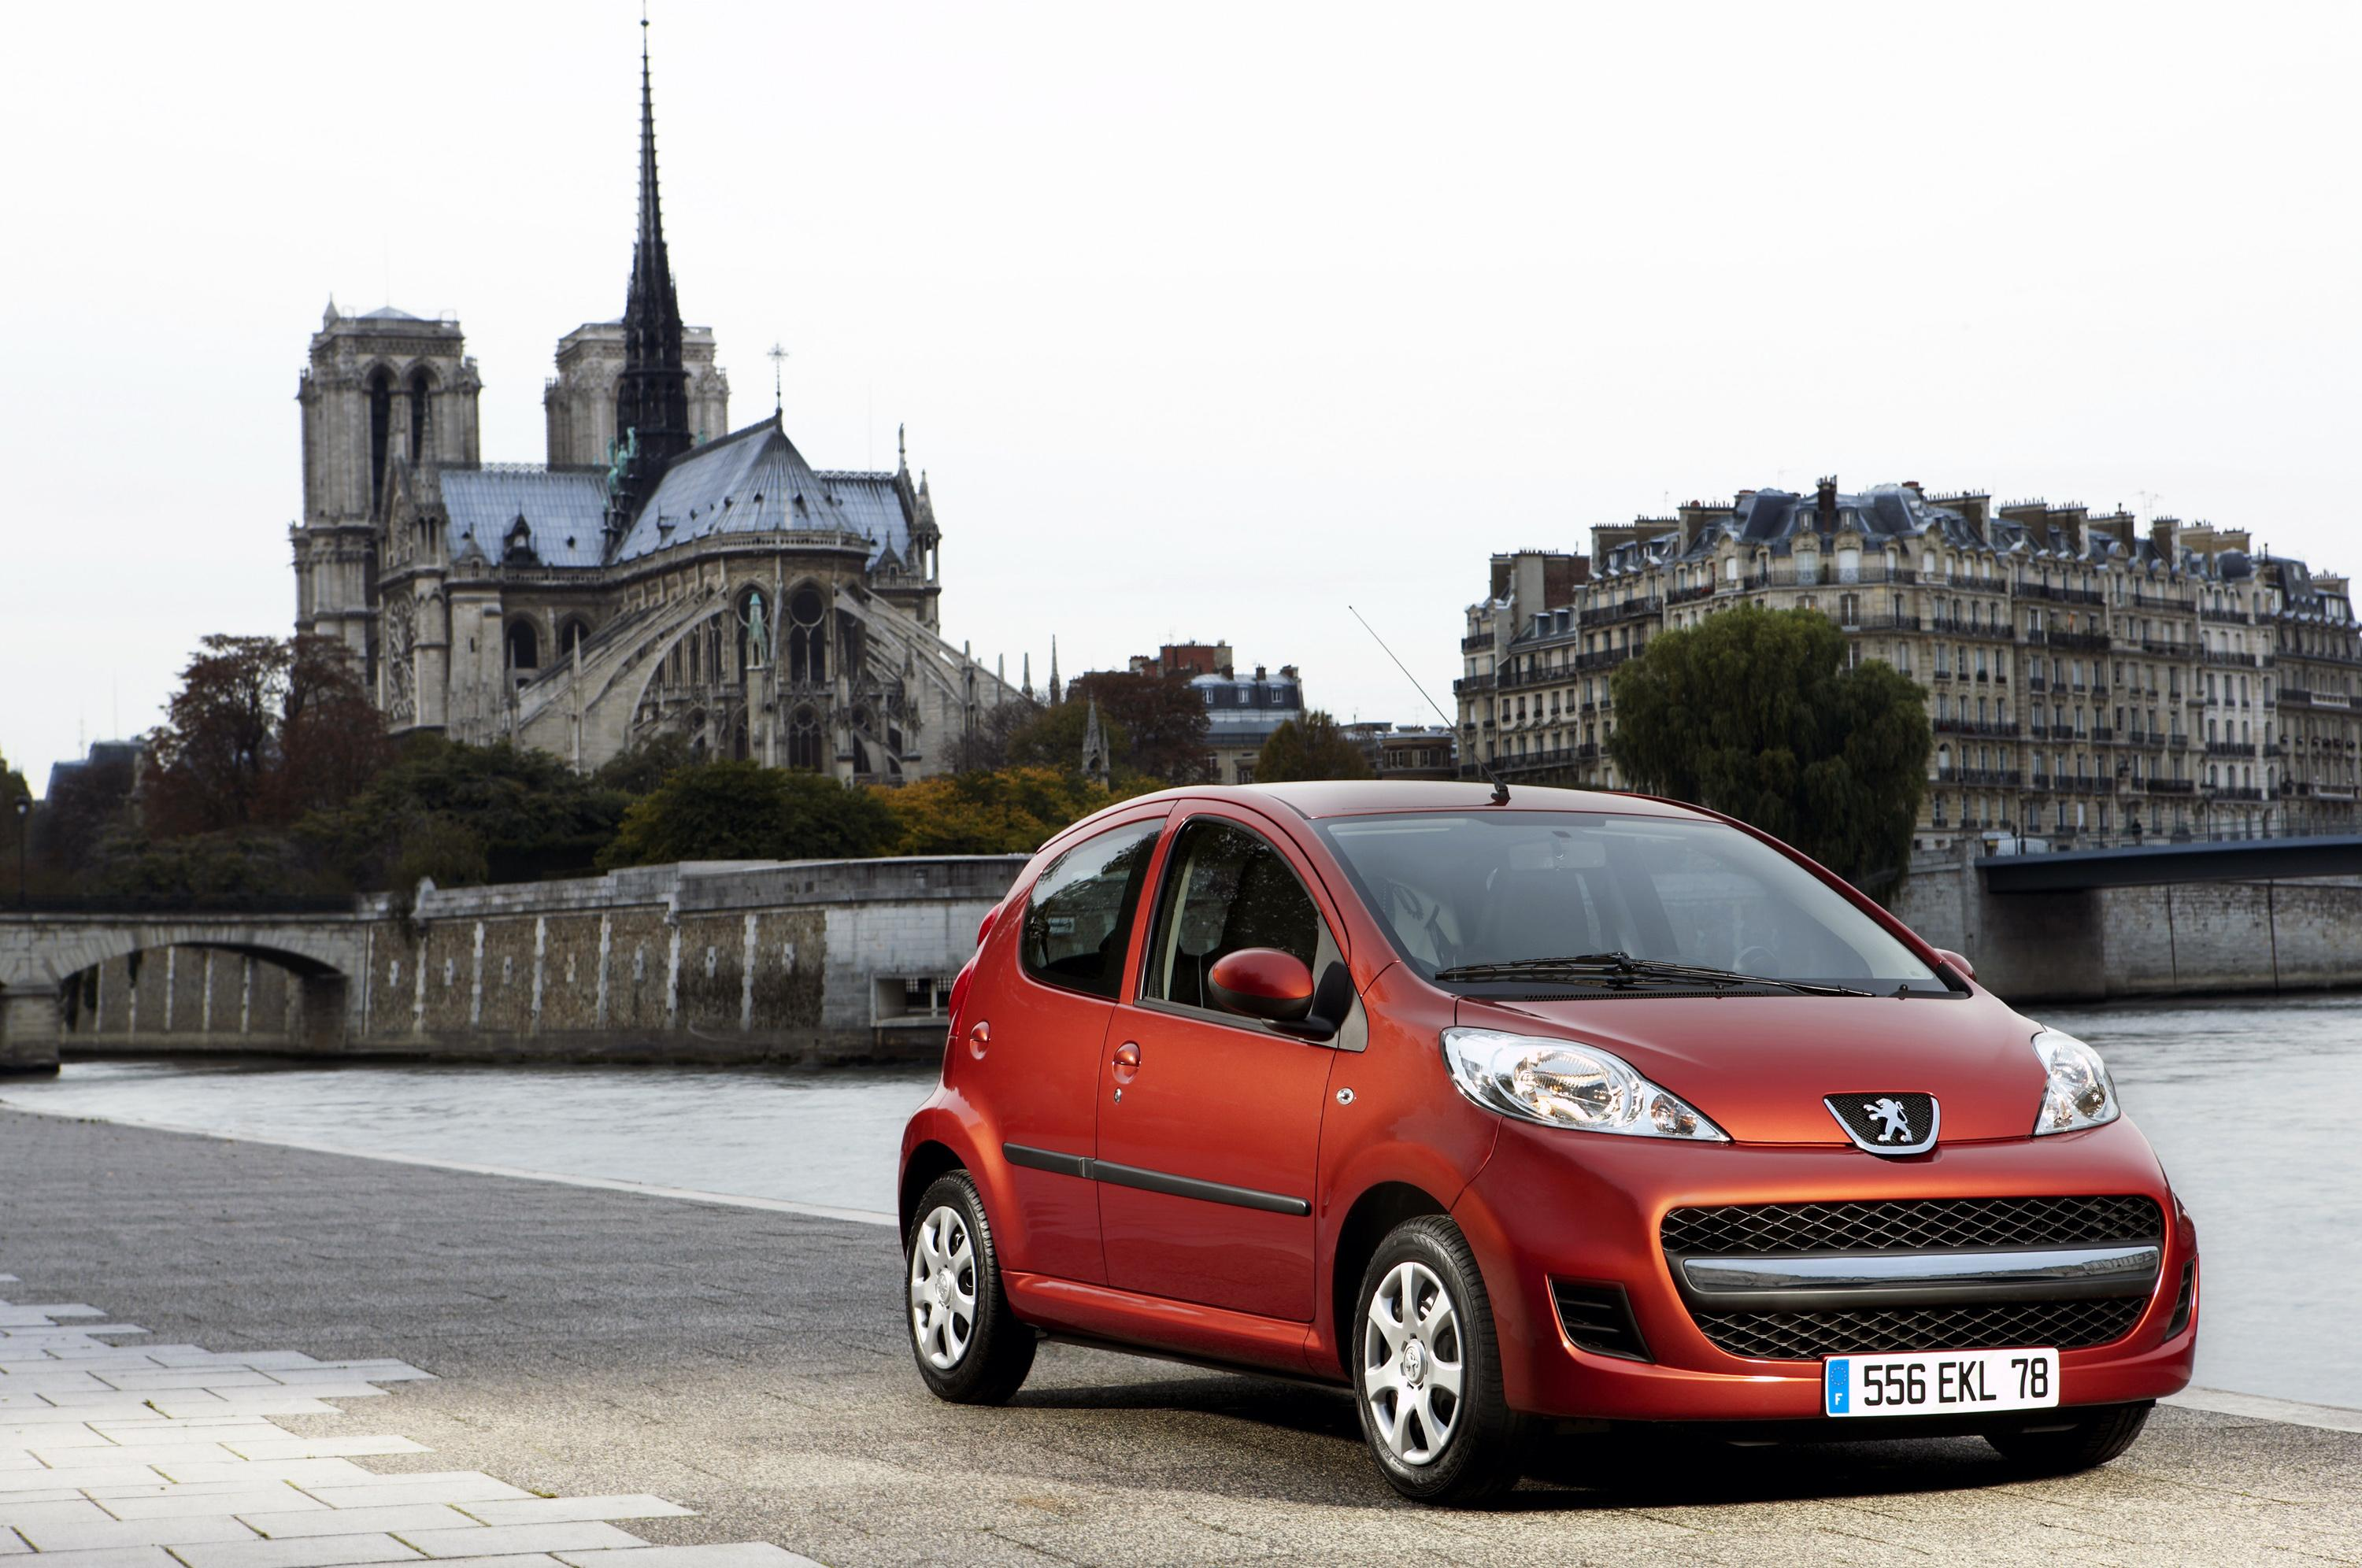 Stylish 2009 Peugeot 107 features improved mpg and co2